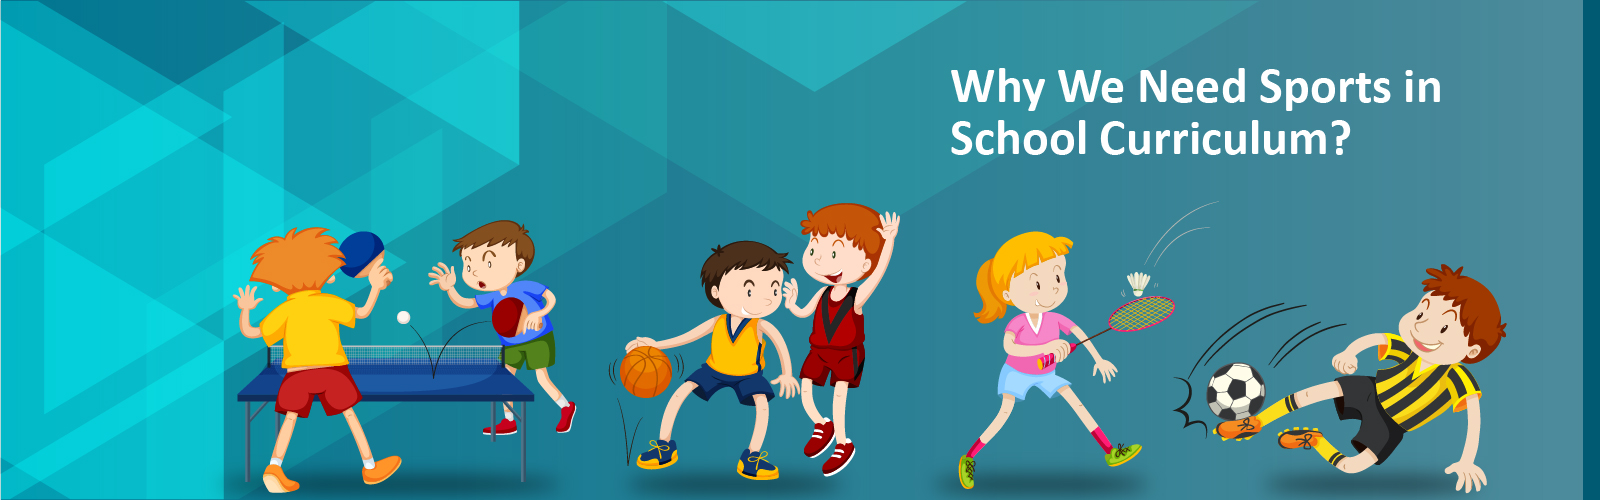 Why We Need Sports in School Curriculum?